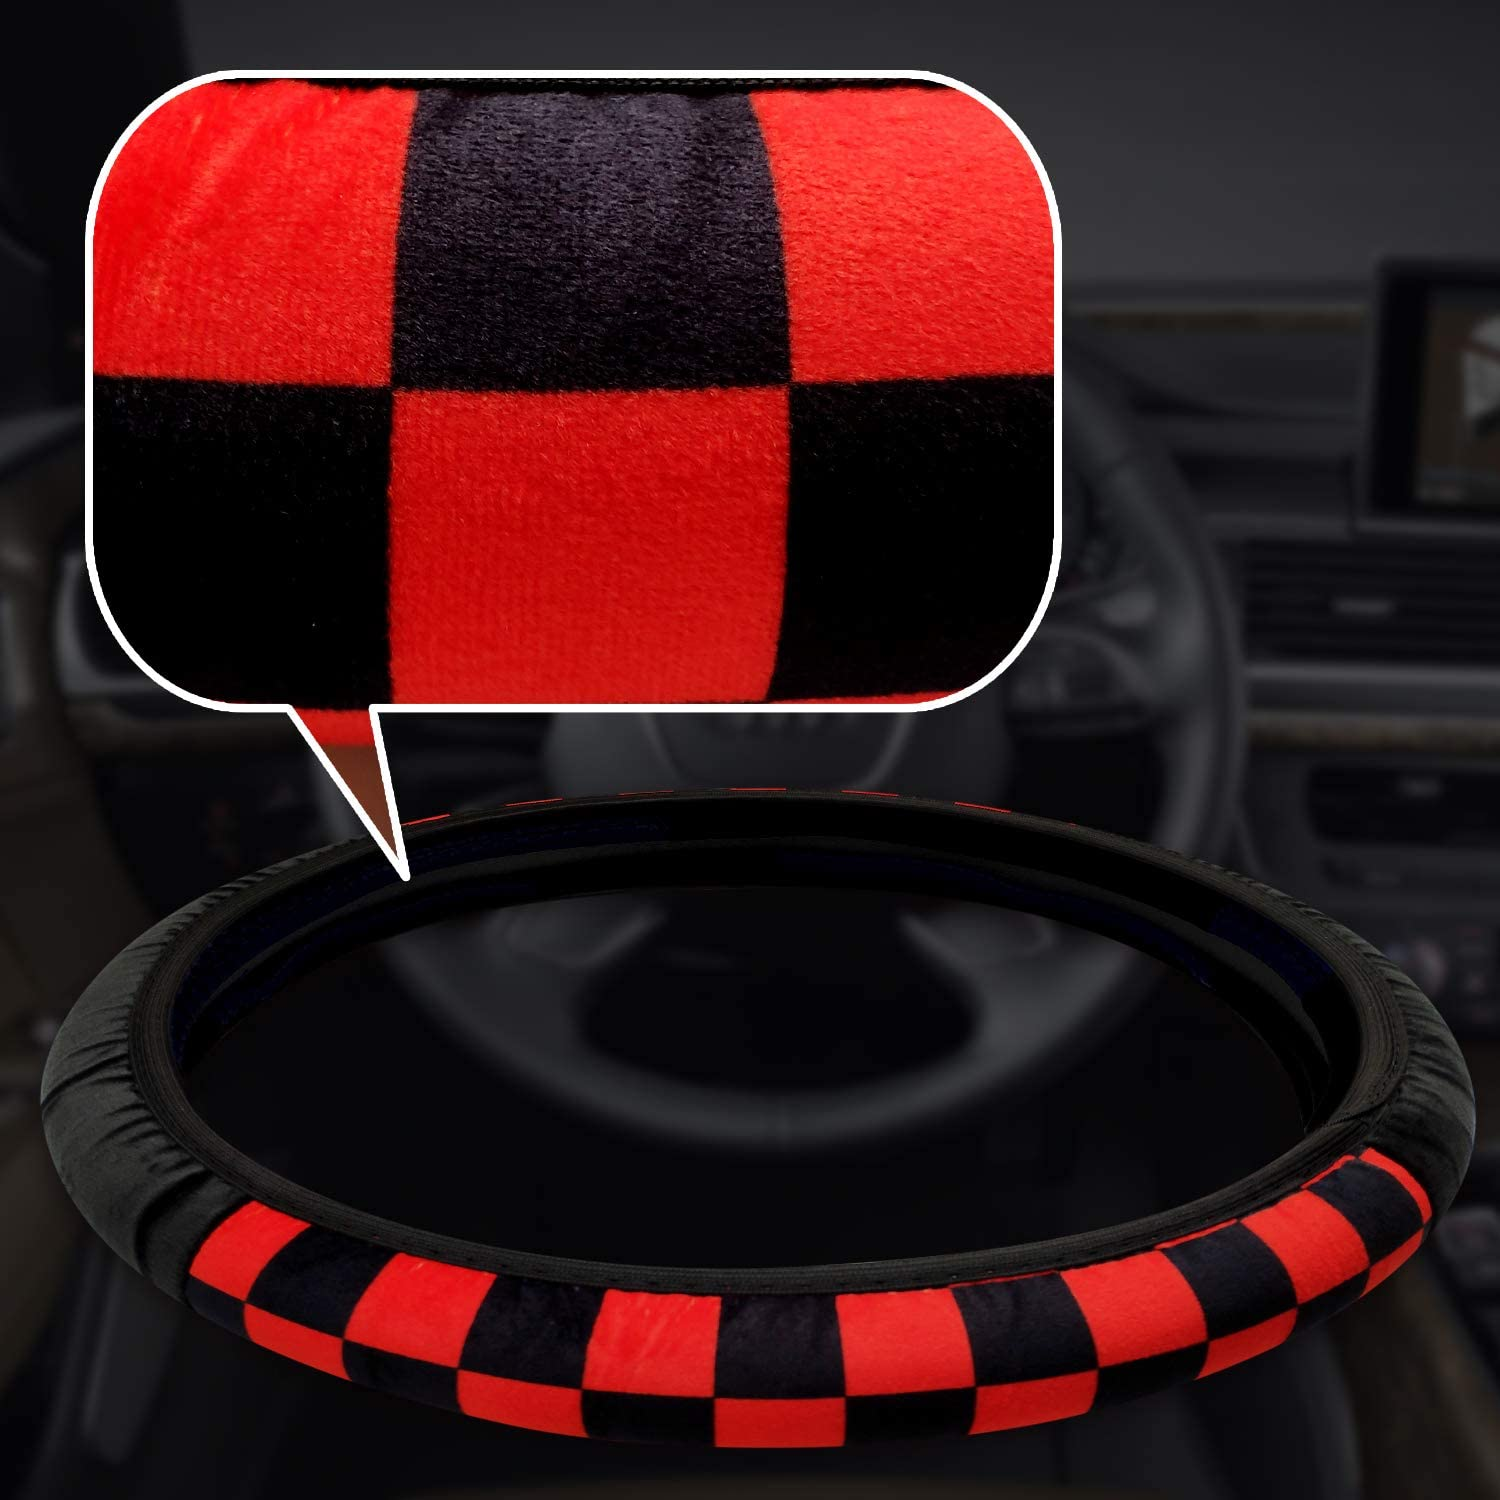 Sport Style Furry Steering Wheel Cover,Universal 15 inch Steering Wheel,Warm in Winter,with Nice Package